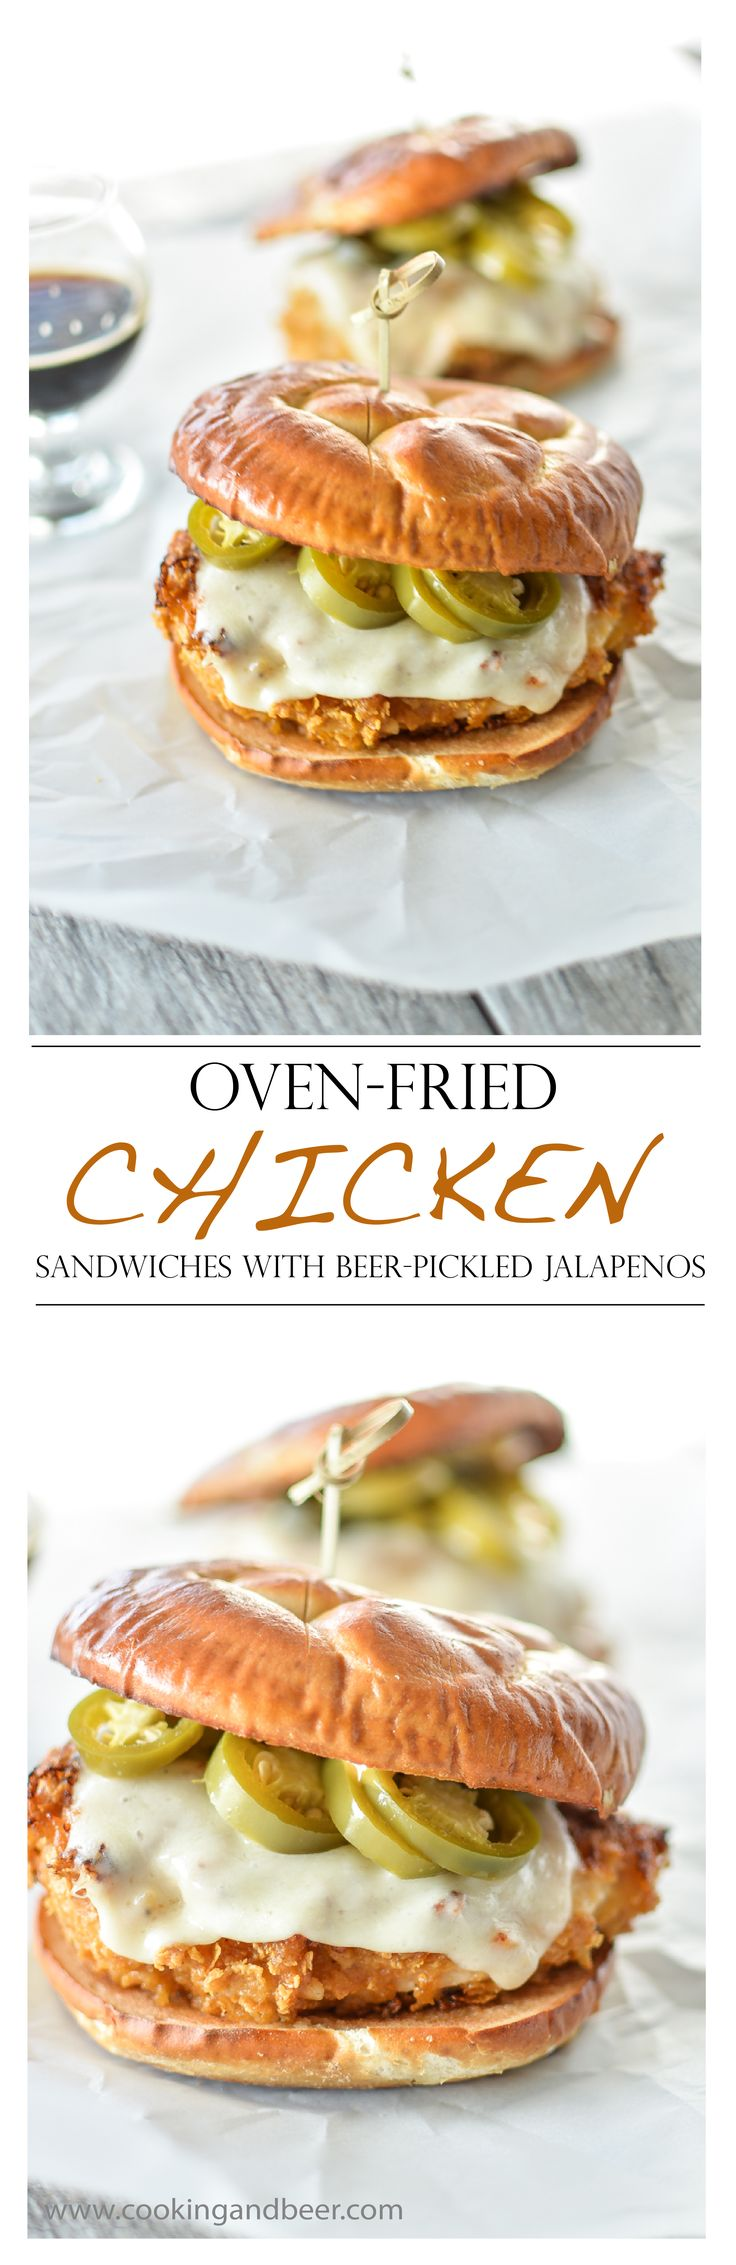 Oven-Fried Chicken Sandwiches with Beer-Pickled Jalapenos   www.cookingandbeer.com   @jalanesulia